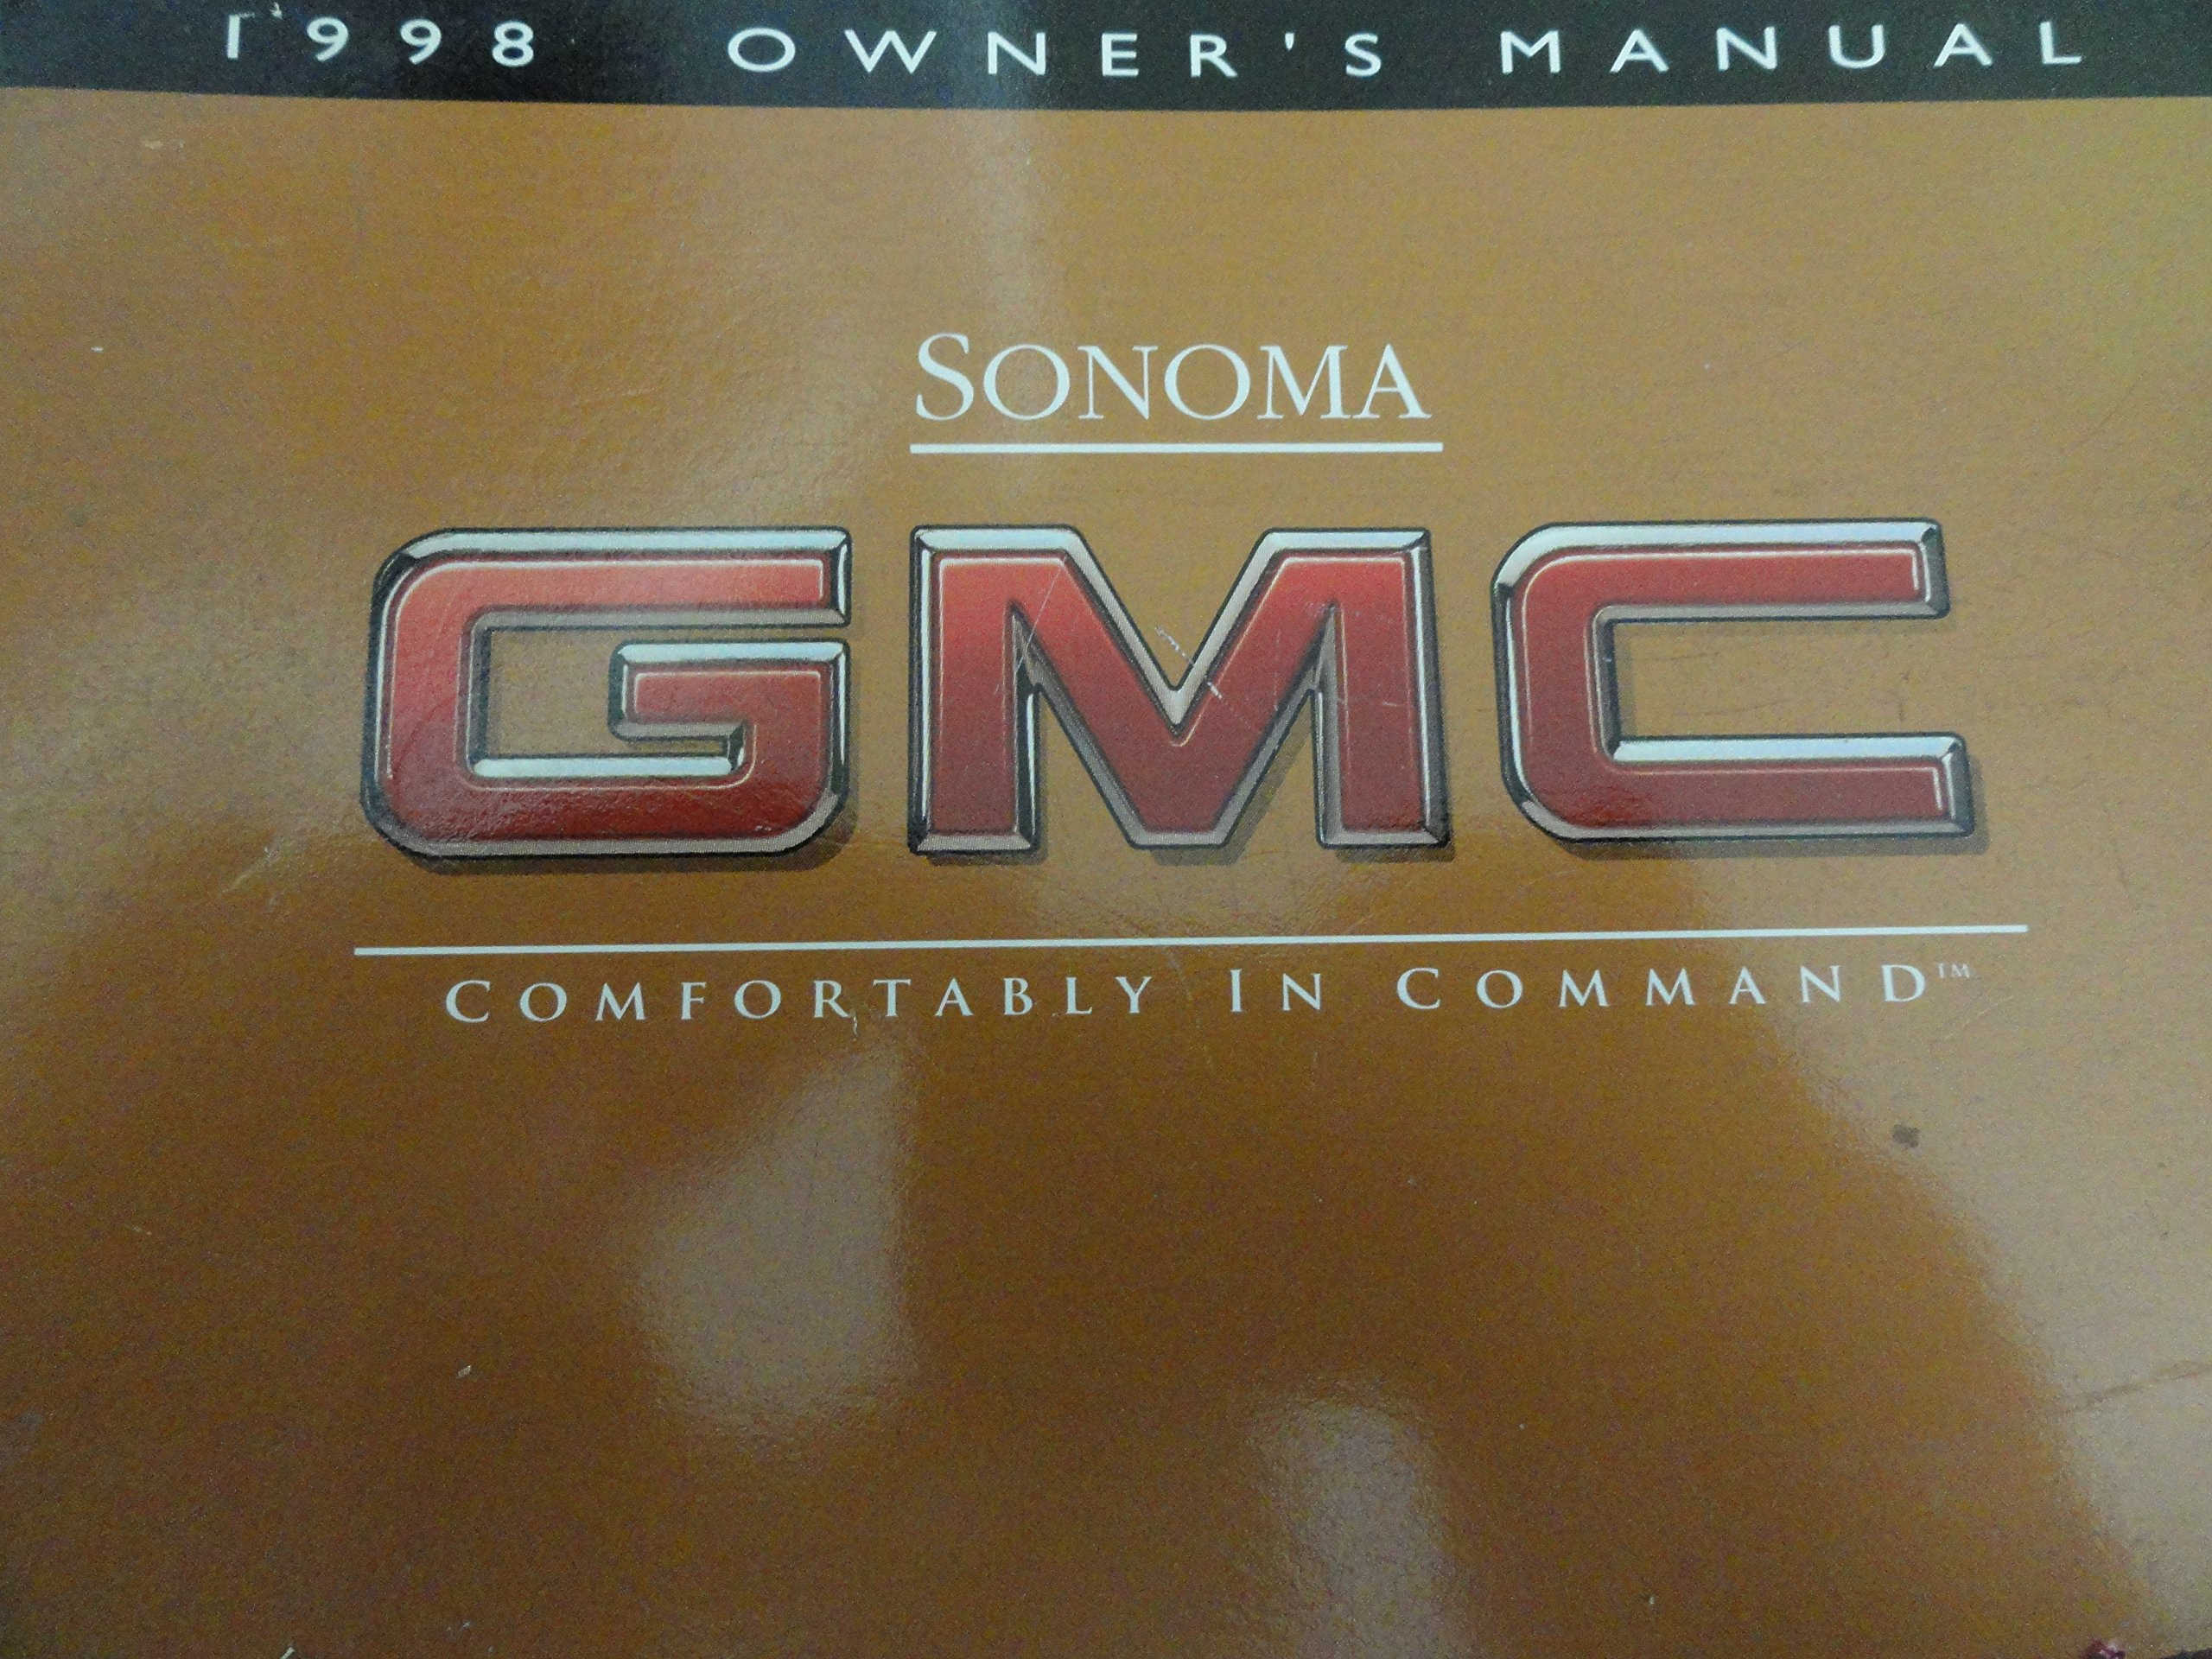 1998 GMC Sonoma Owners Manual Paperback – 1998